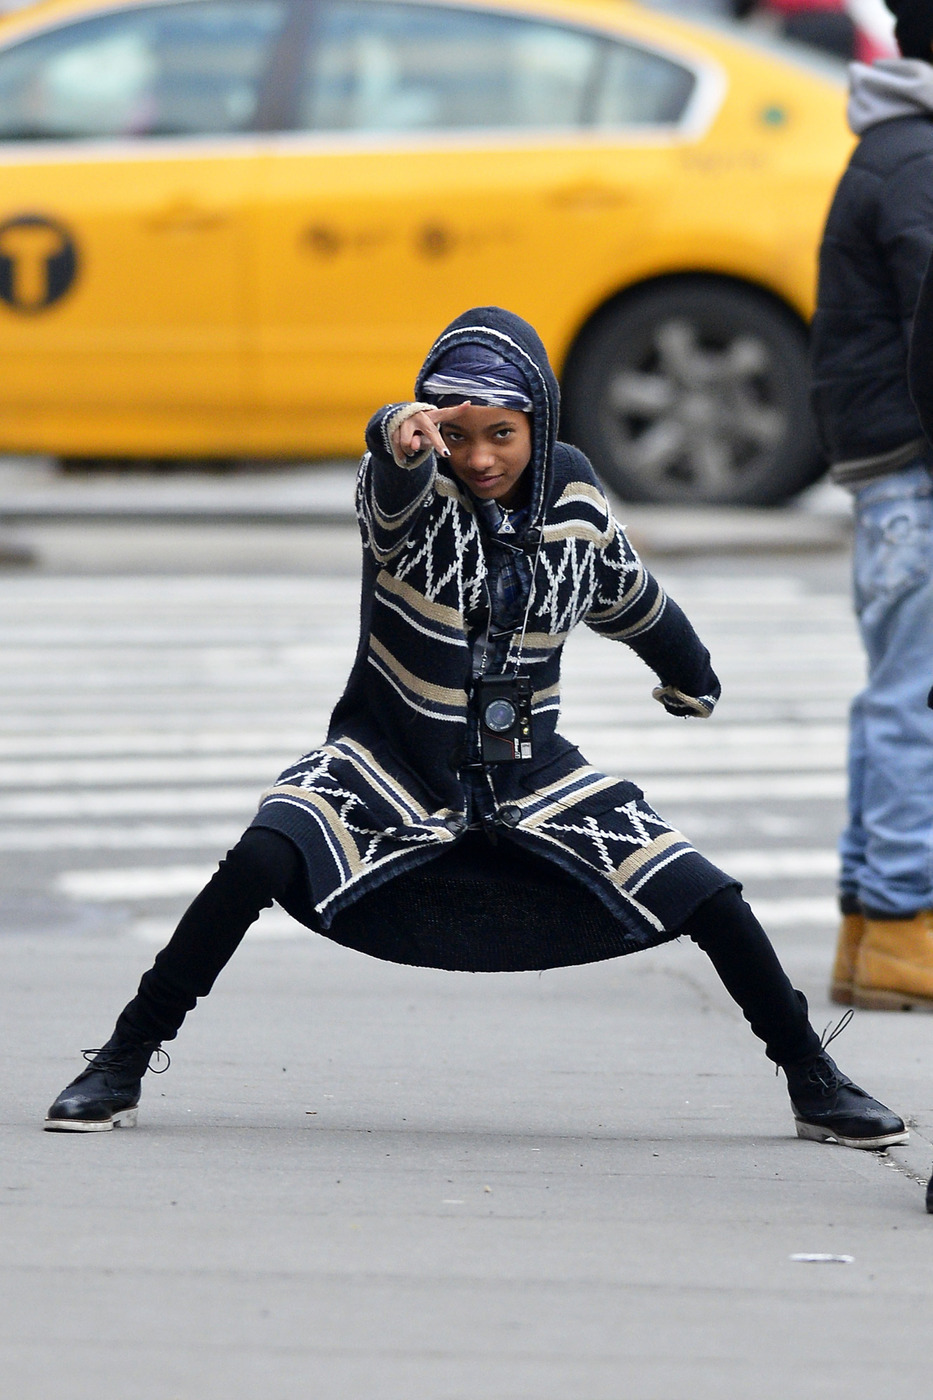 willow smith will smith daughter street paparazzi crazy pose